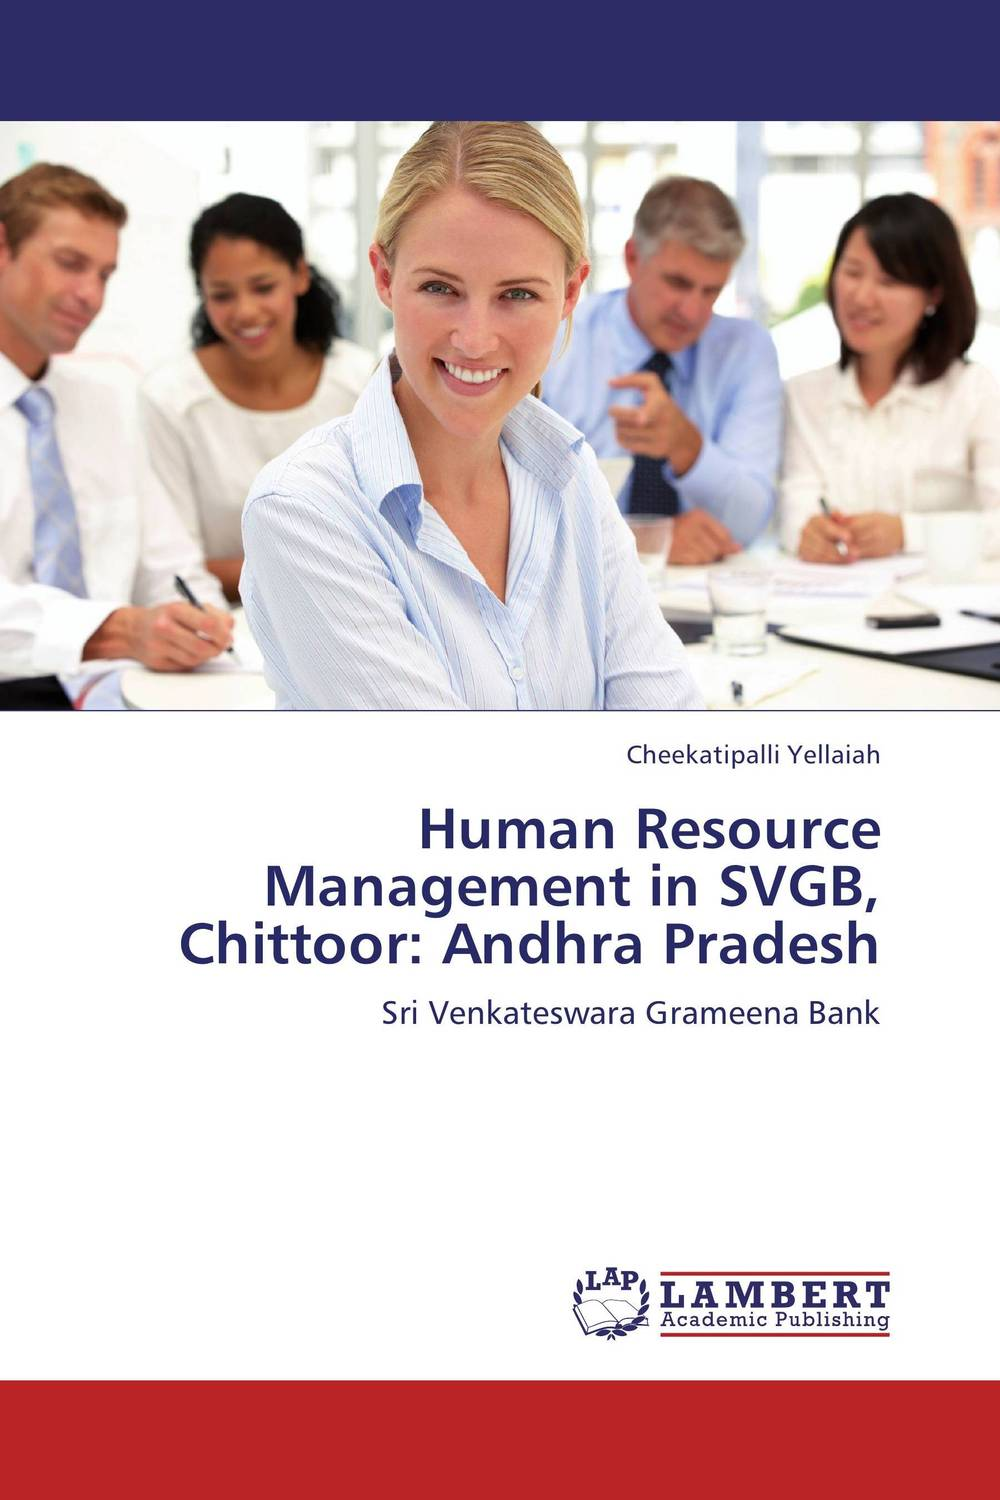 Human Resource Management in SVGB, Chittoor: Andhra Pradesh poverty and development in rural india